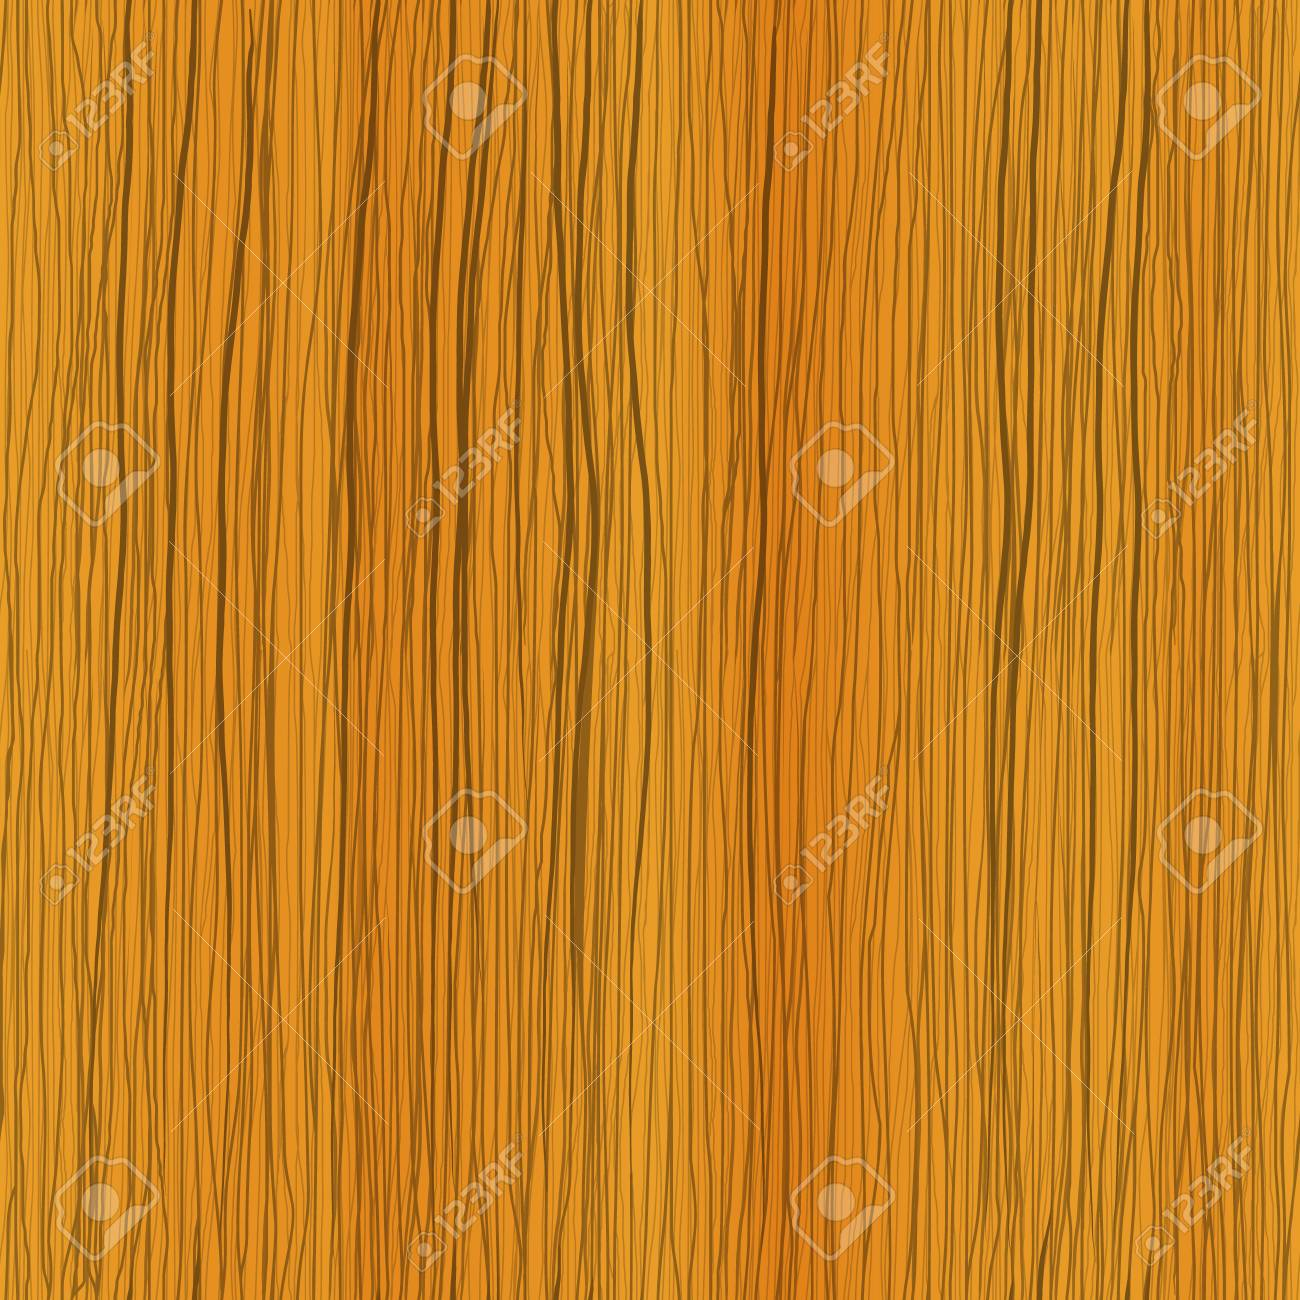 Hand Drawn Wood Seamless Texture Teak Wood Background For Your Royalty Free Cliparts Vectors And Stock Illustration Image 65796095